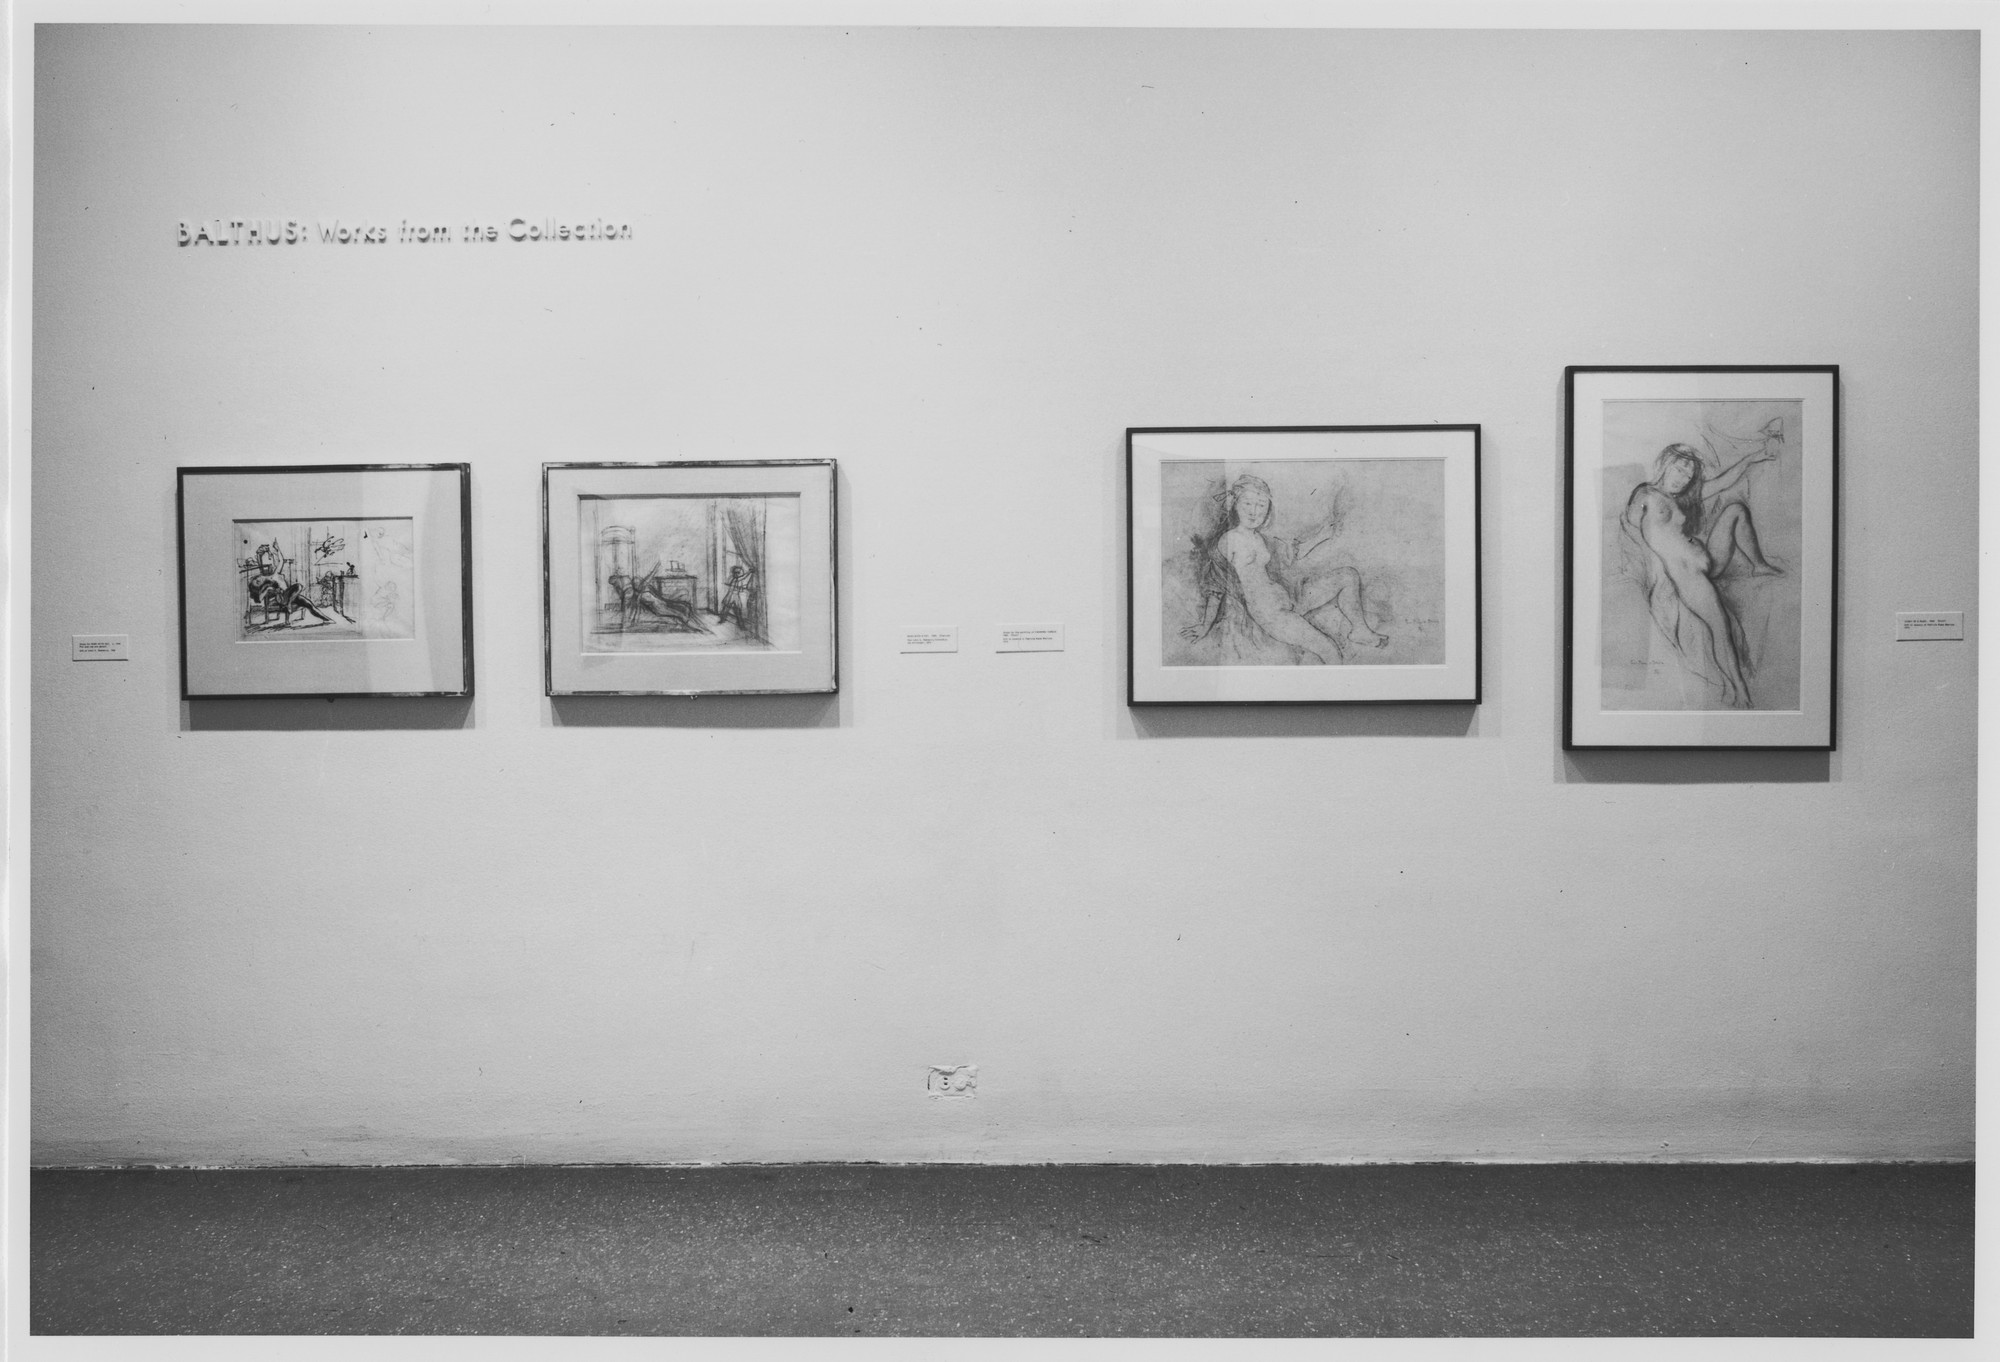 "Installation view of the exhibition, ""Balthus: Works from the Collection"" September 30, 1981–January 4, 1982. Photographic Archive. The Museum of Modern Art Archives, New York. IN1321.1. Photograph by Mali Olatunji."